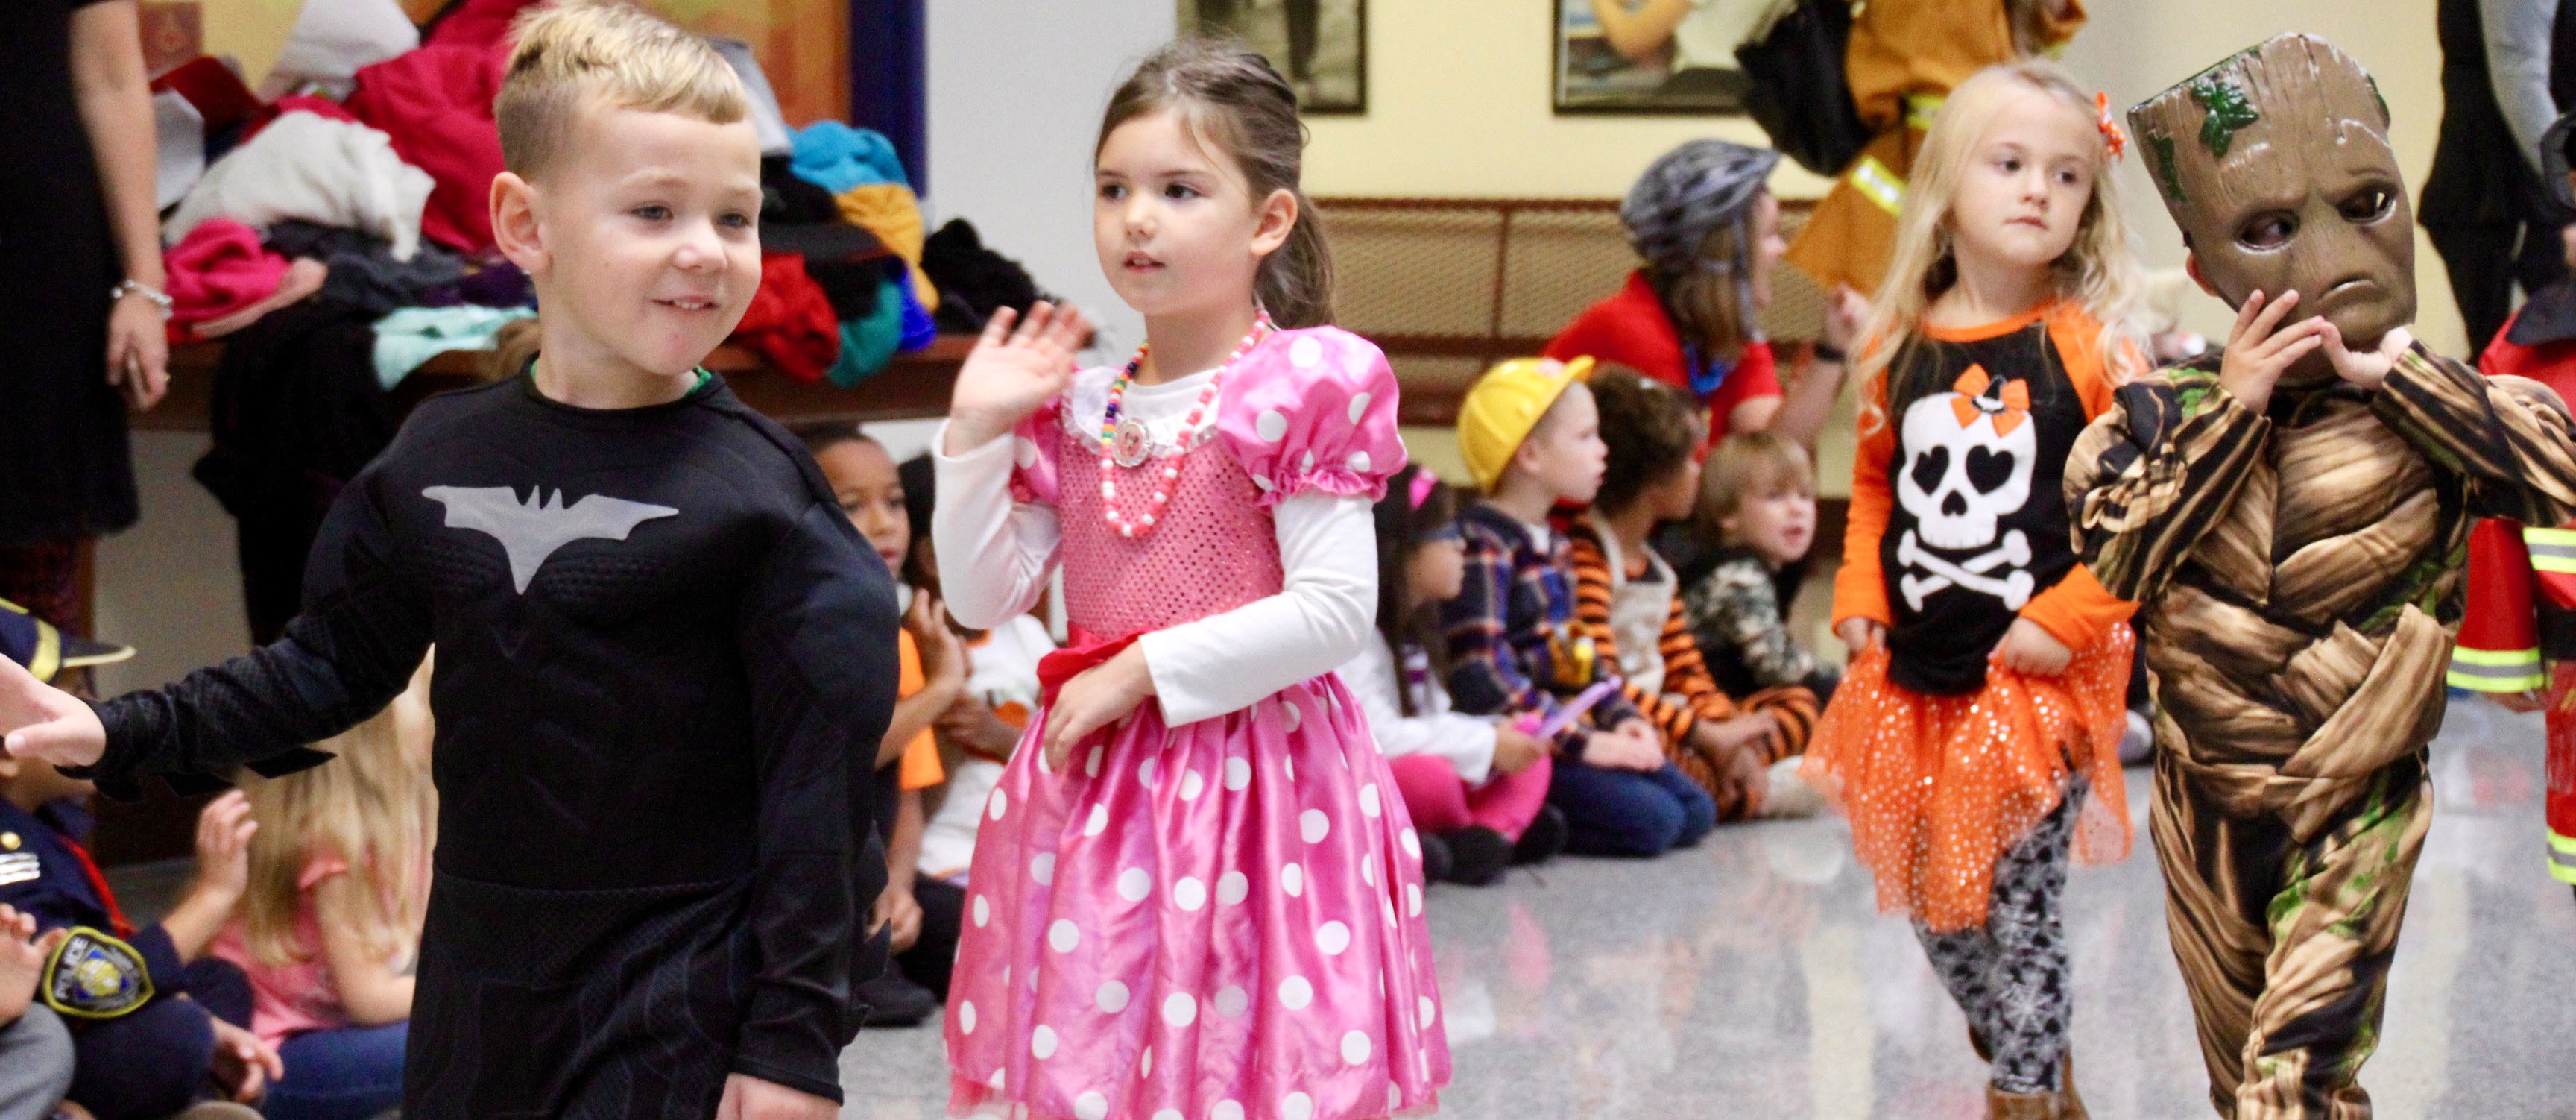 Students from Little Quakers Academy preschool parade their Halloween costumes through Clarks Creek at the start of the Halloween school day.